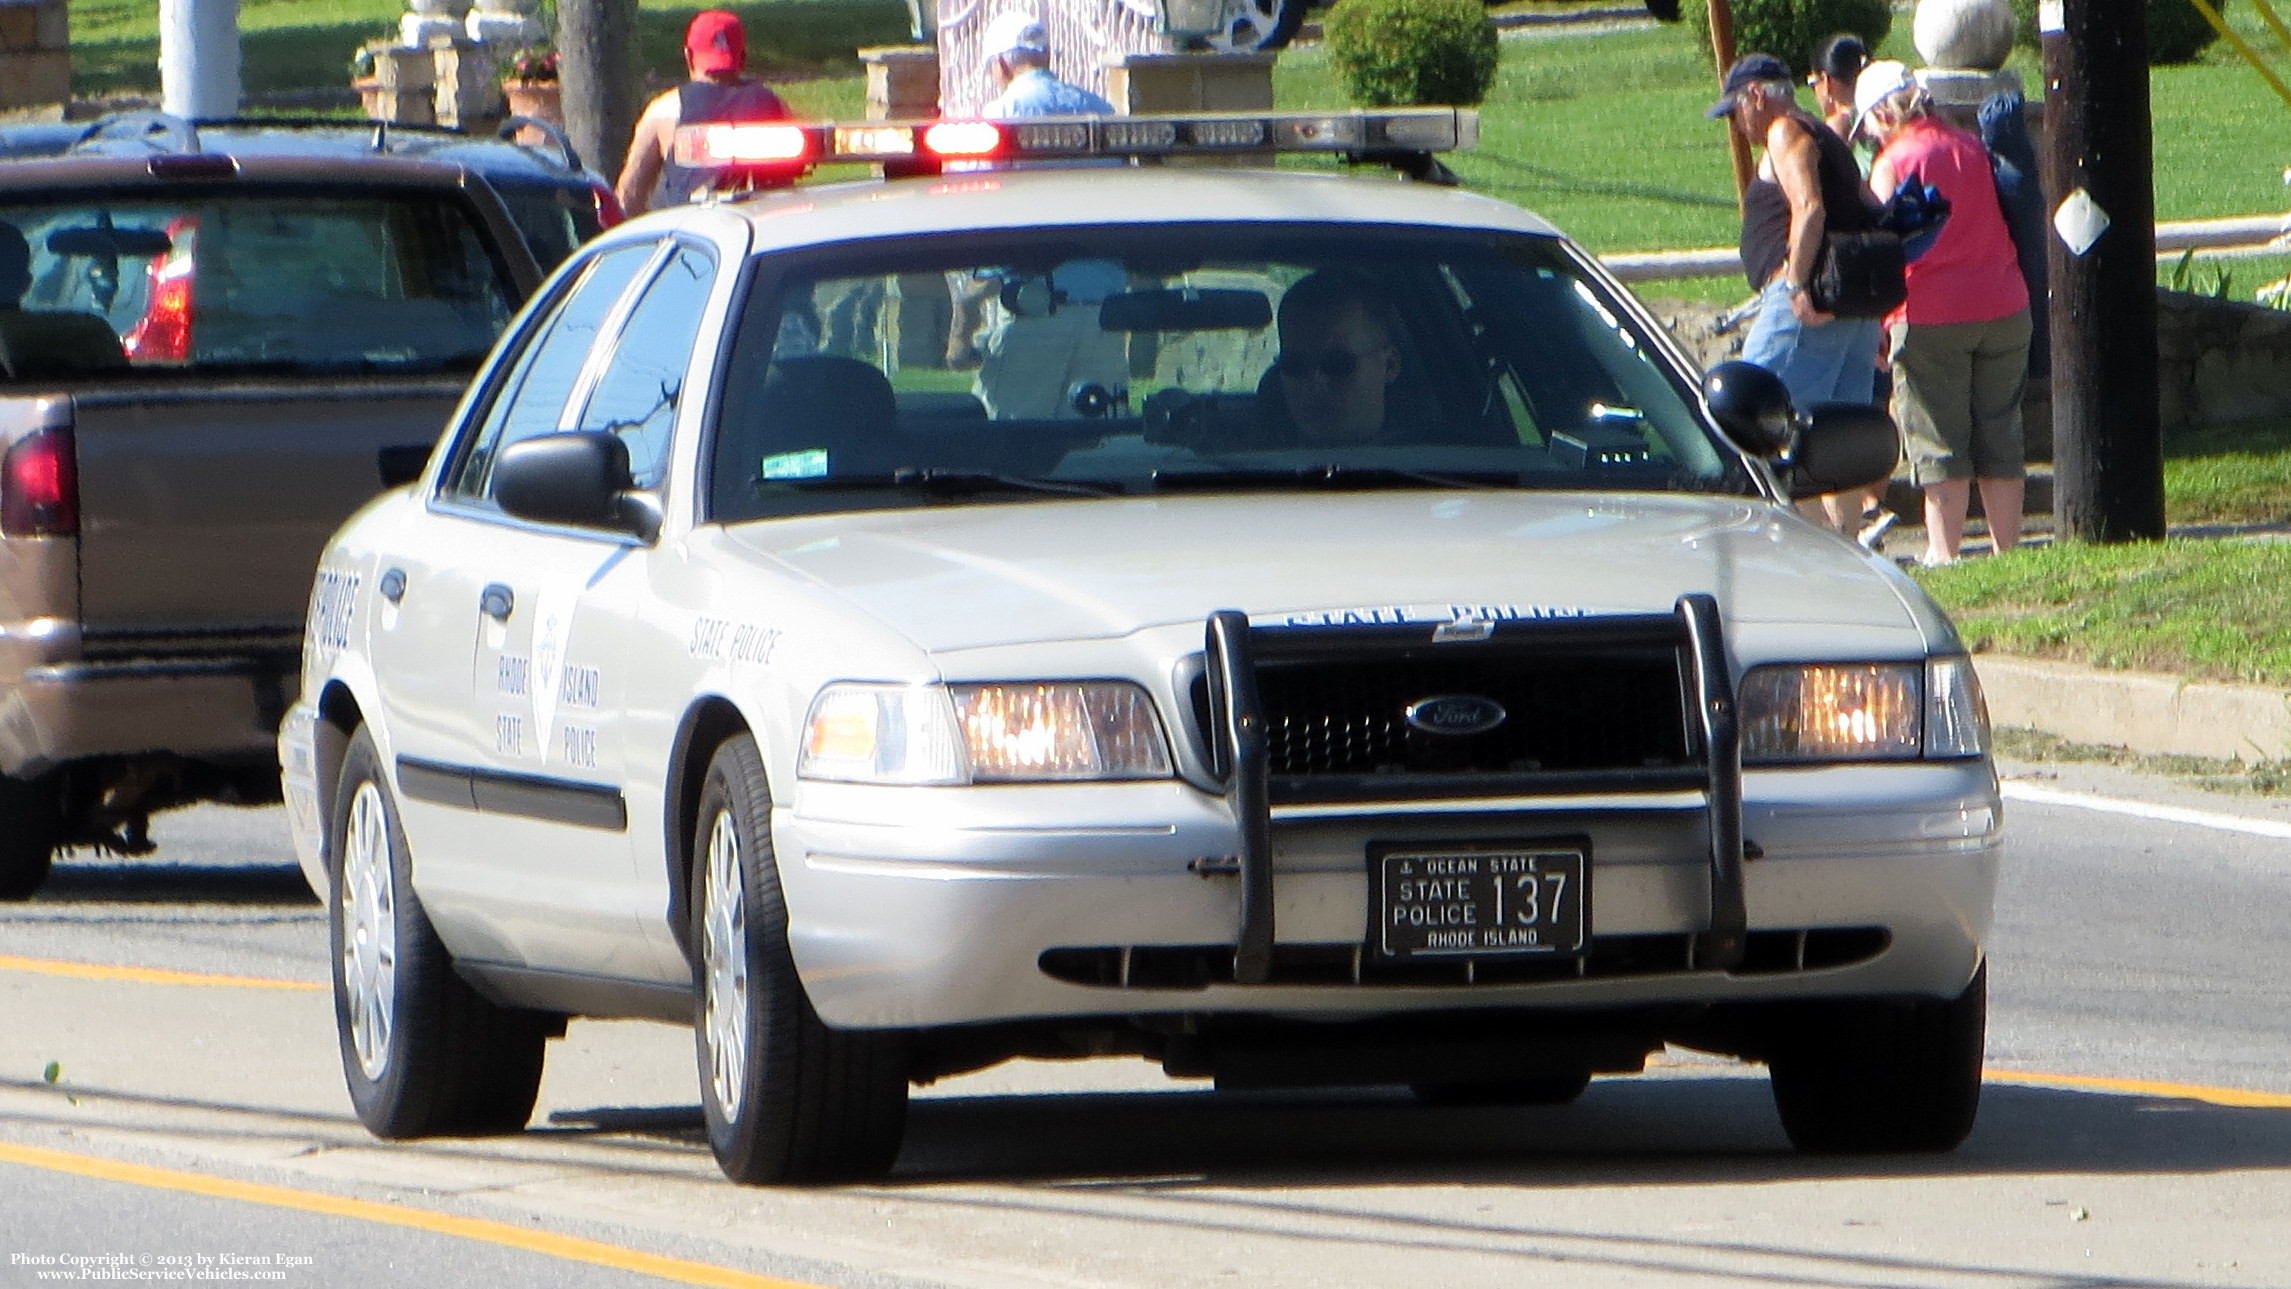 A photo  of Rhode Island State Police             Cruiser 137, a 2006-2008 Ford Crown Victoria Police Interceptor             taken by Kieran Egan